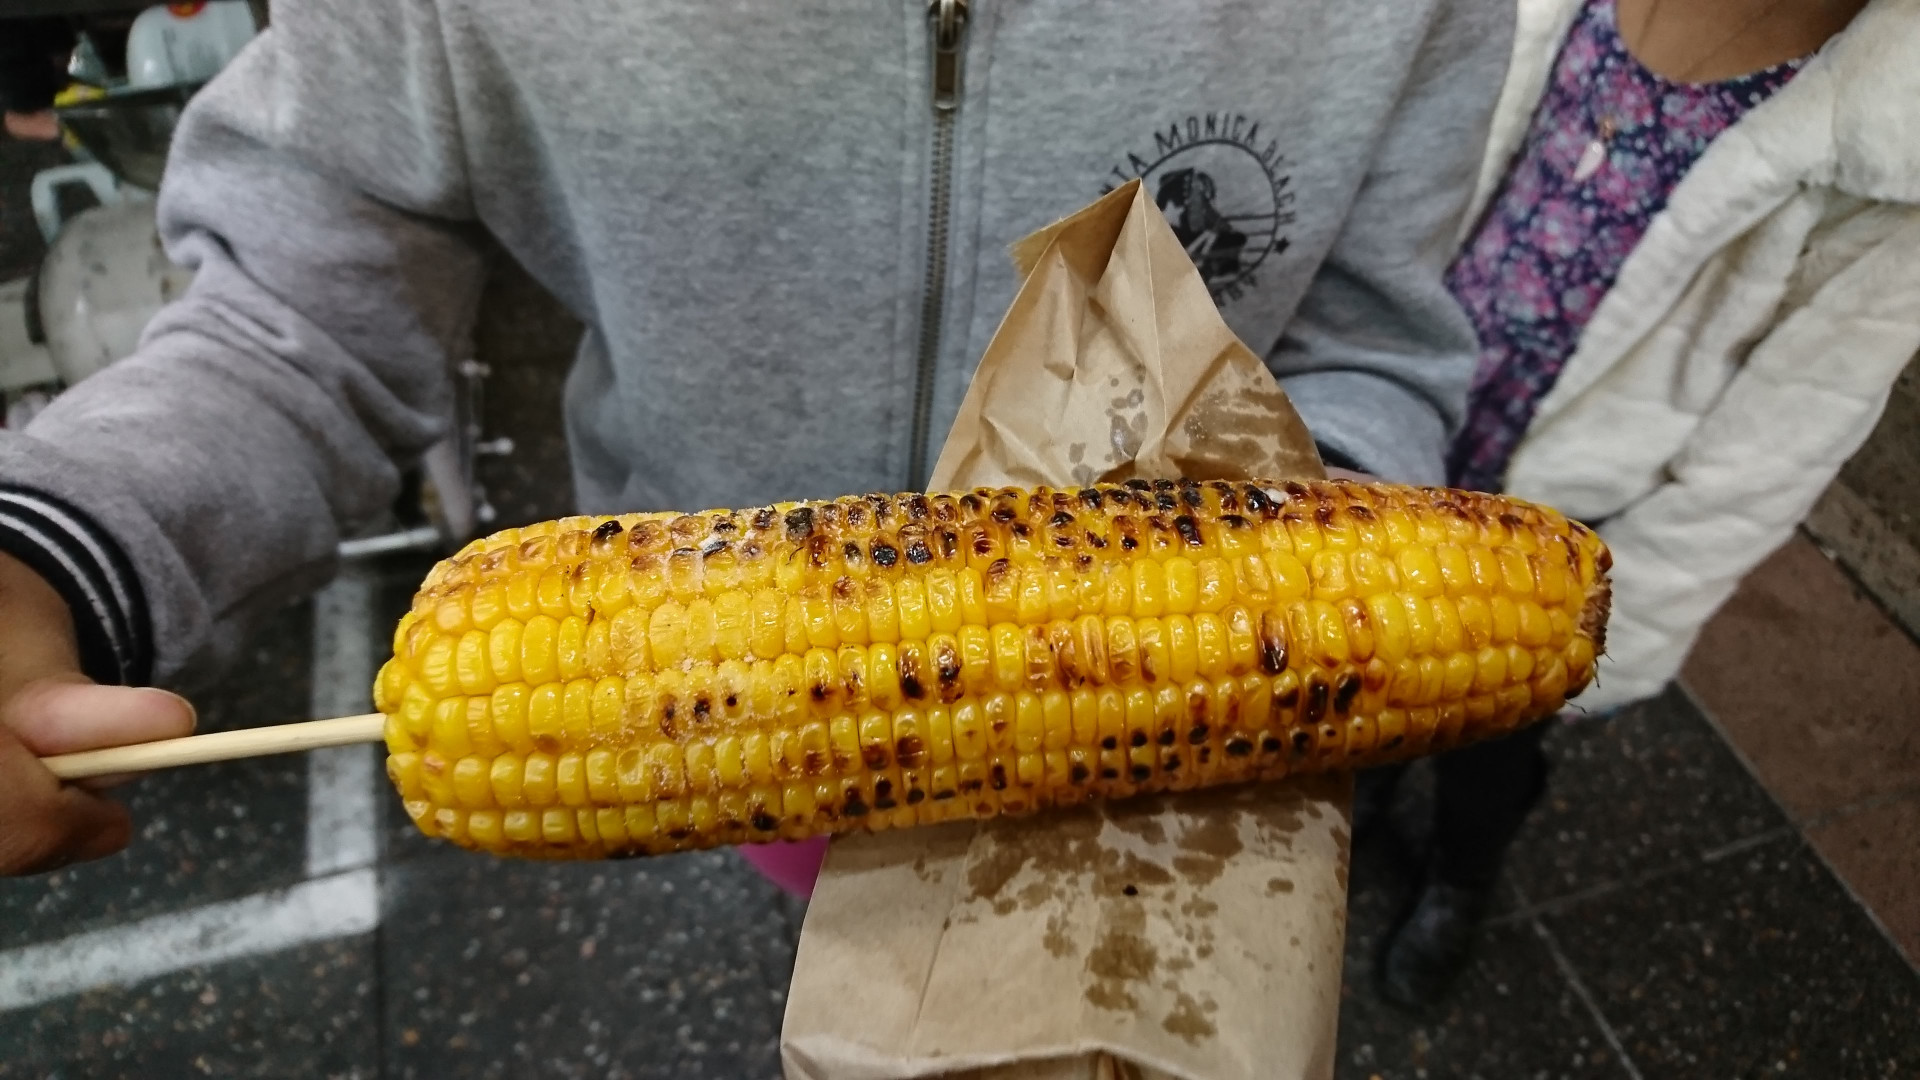 The perfect side dish - char-grilled corn on the cob.